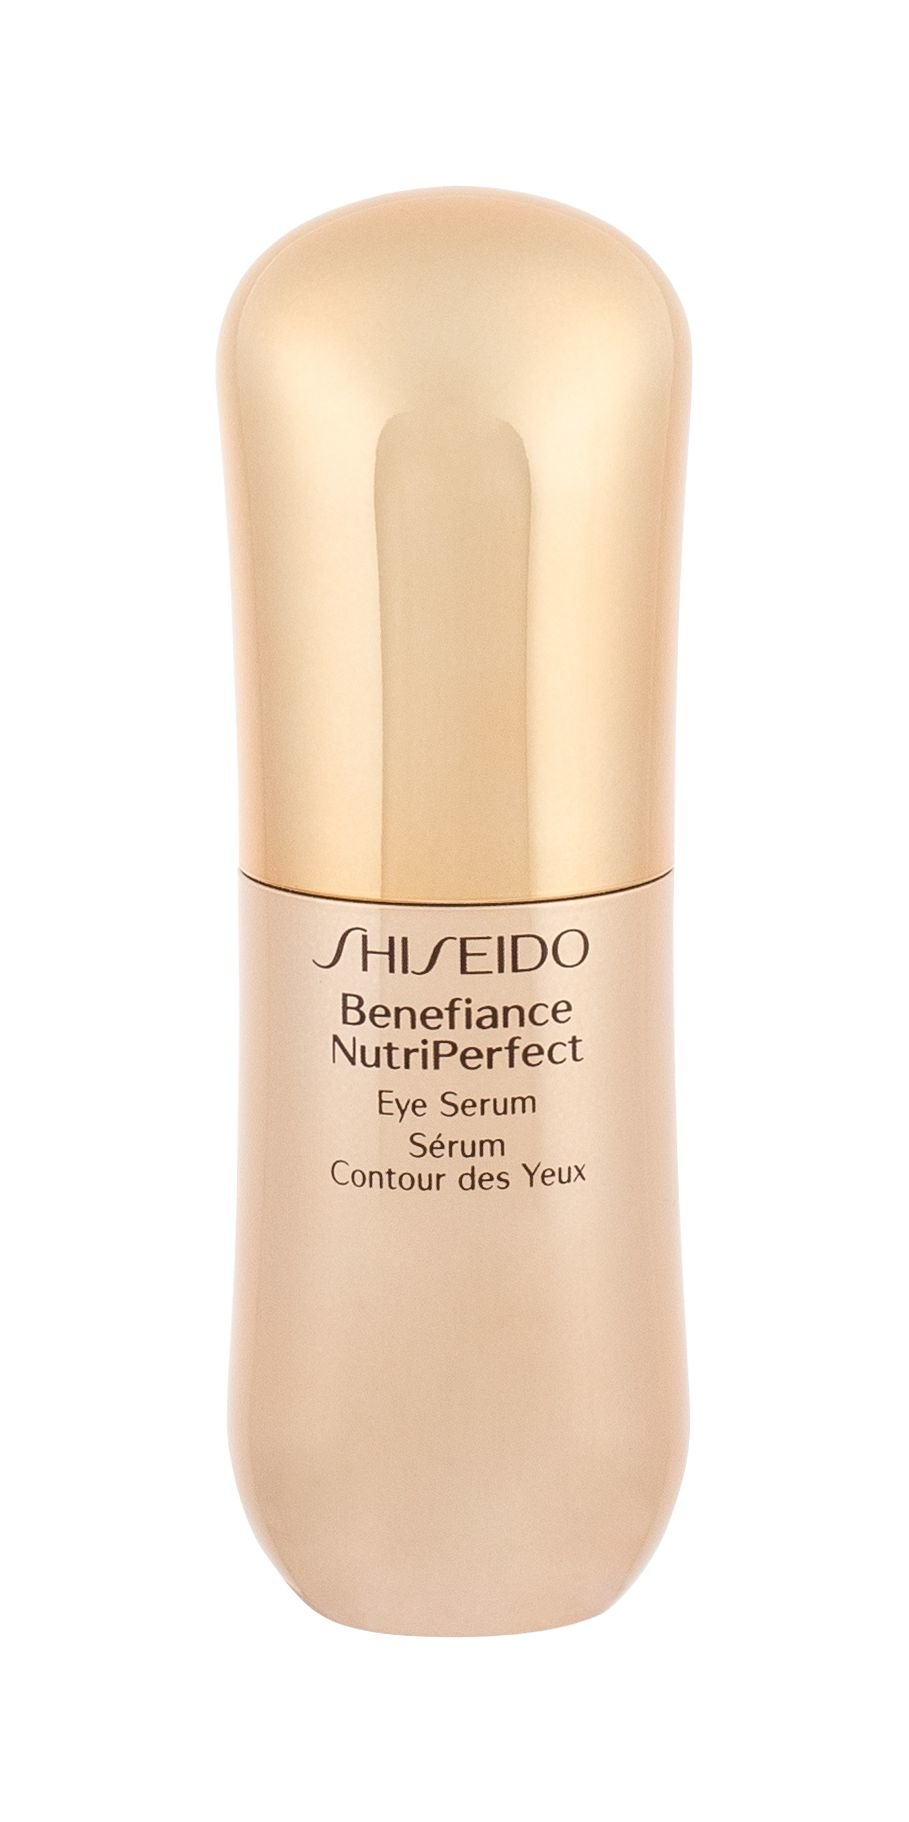 Shiseido Benefiance NutriPerfect Cosmetic 15ml